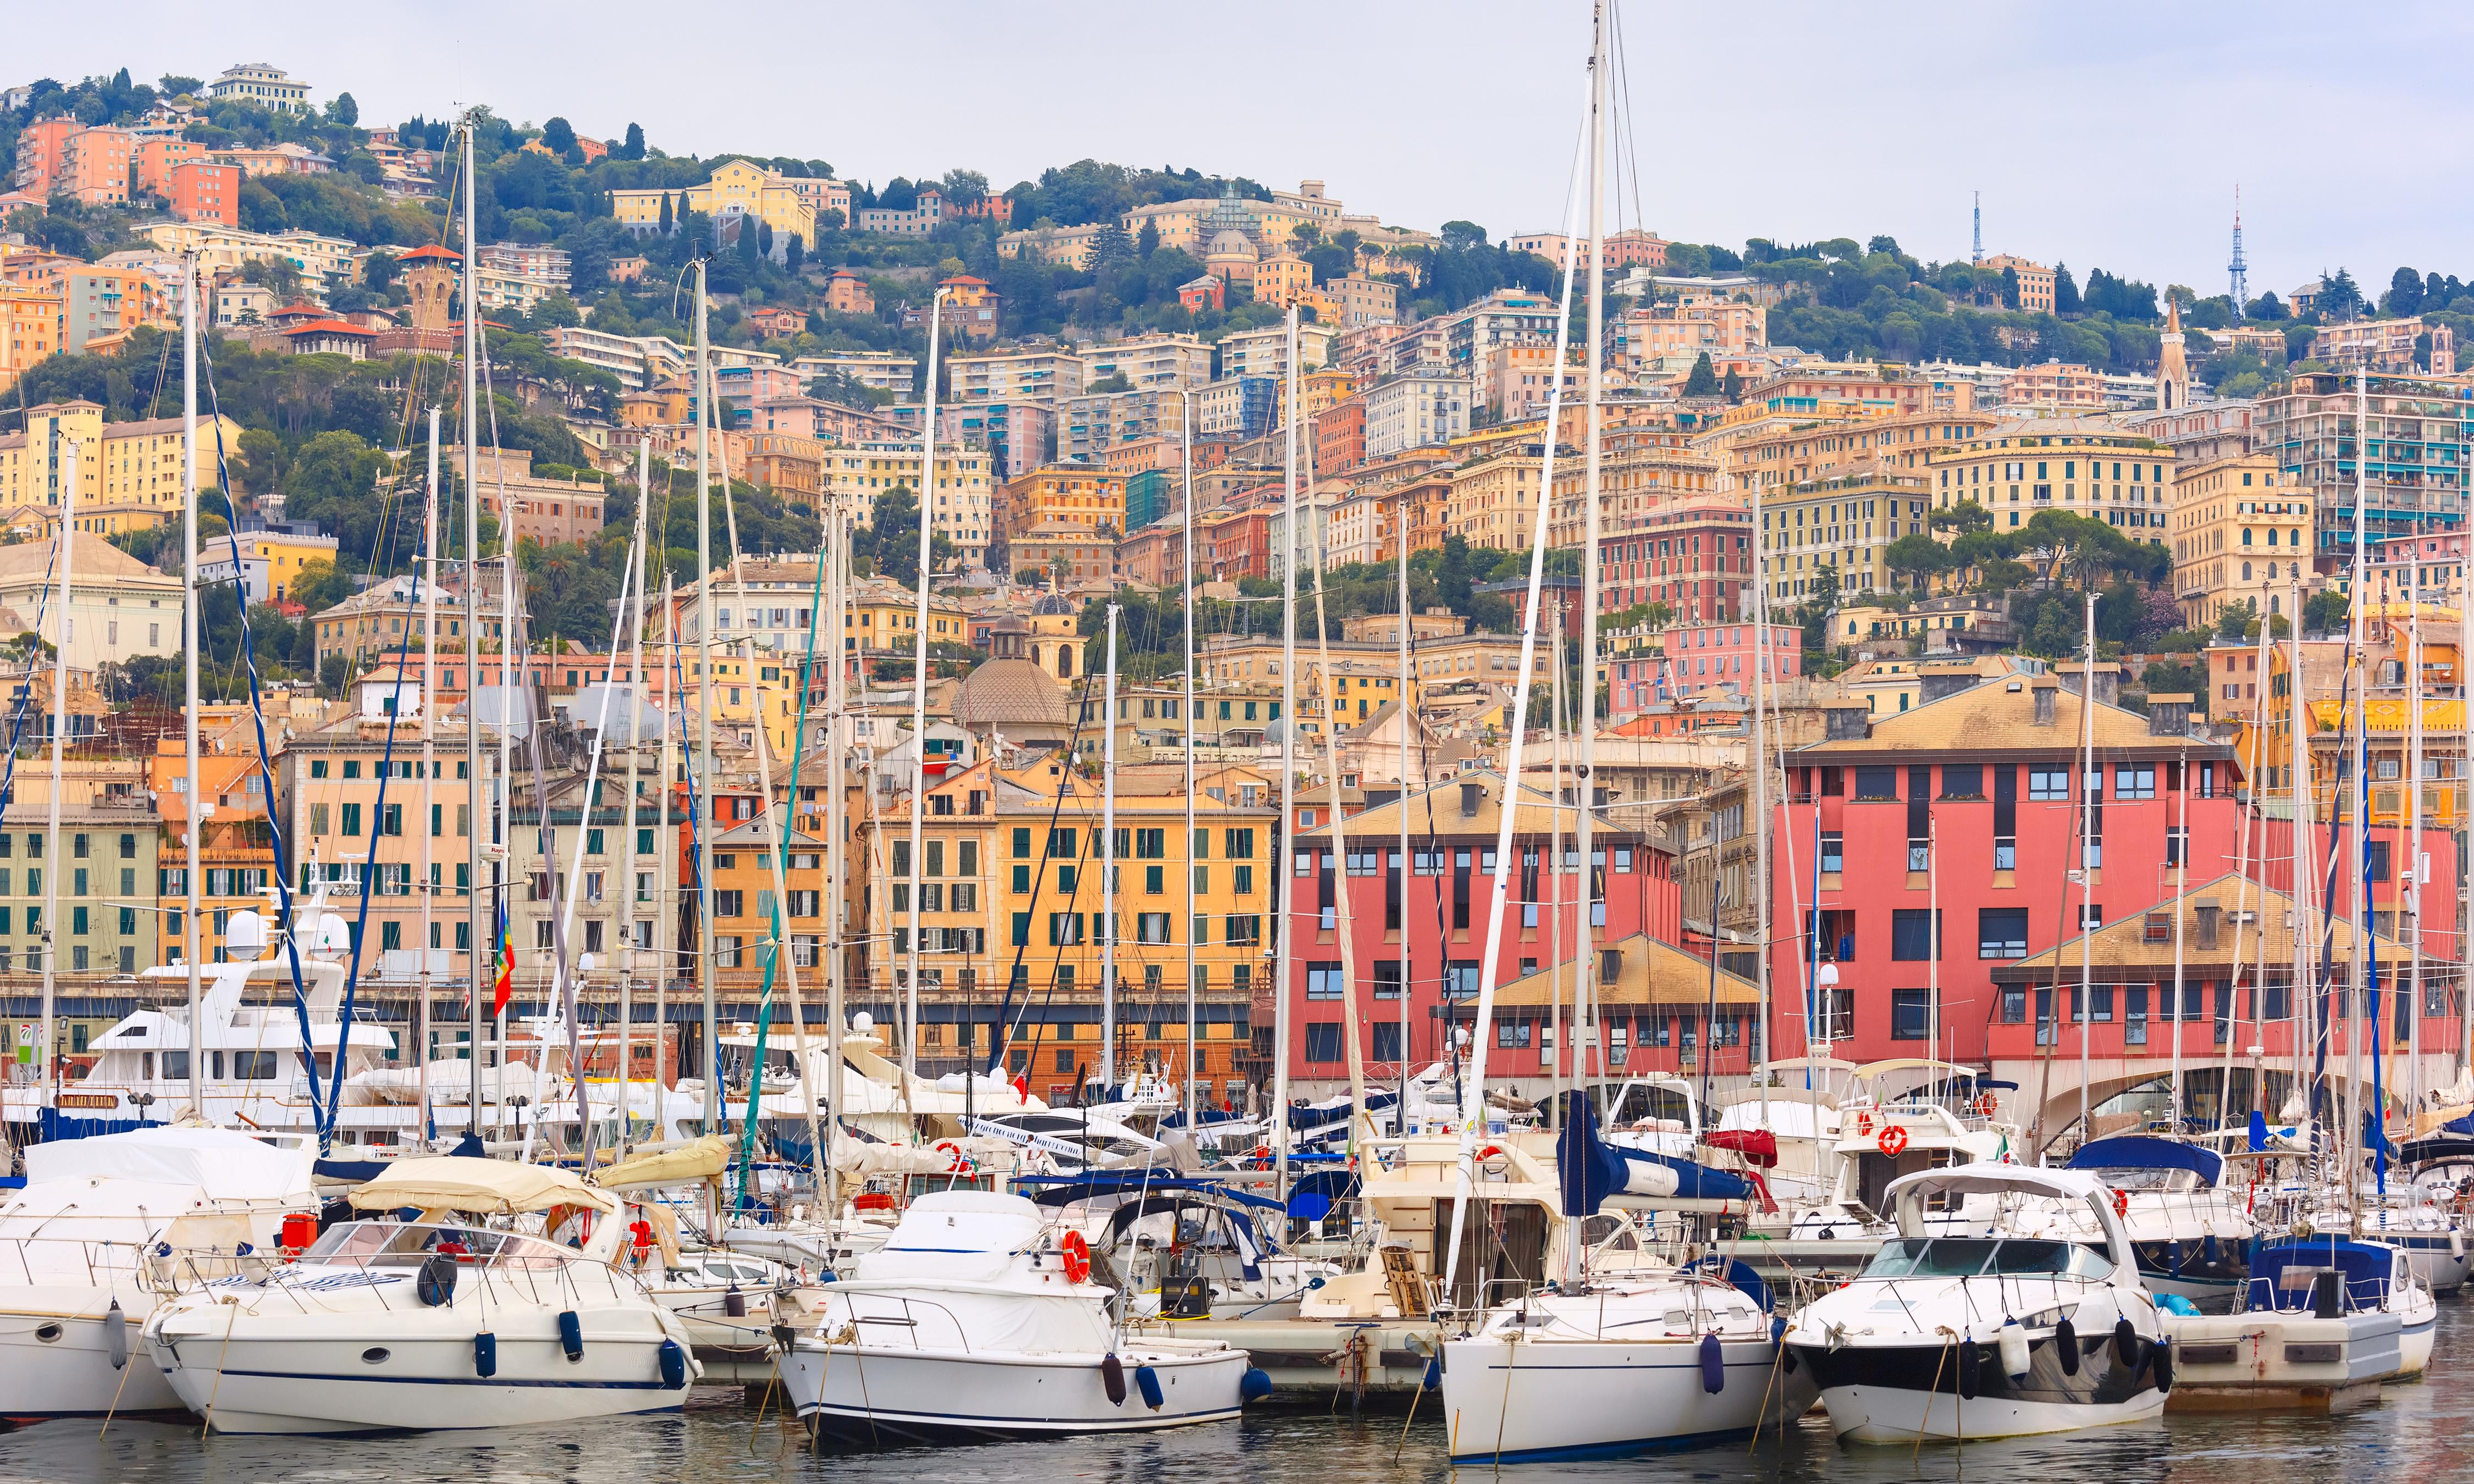 A local's guide to Genoa: 10 top tips